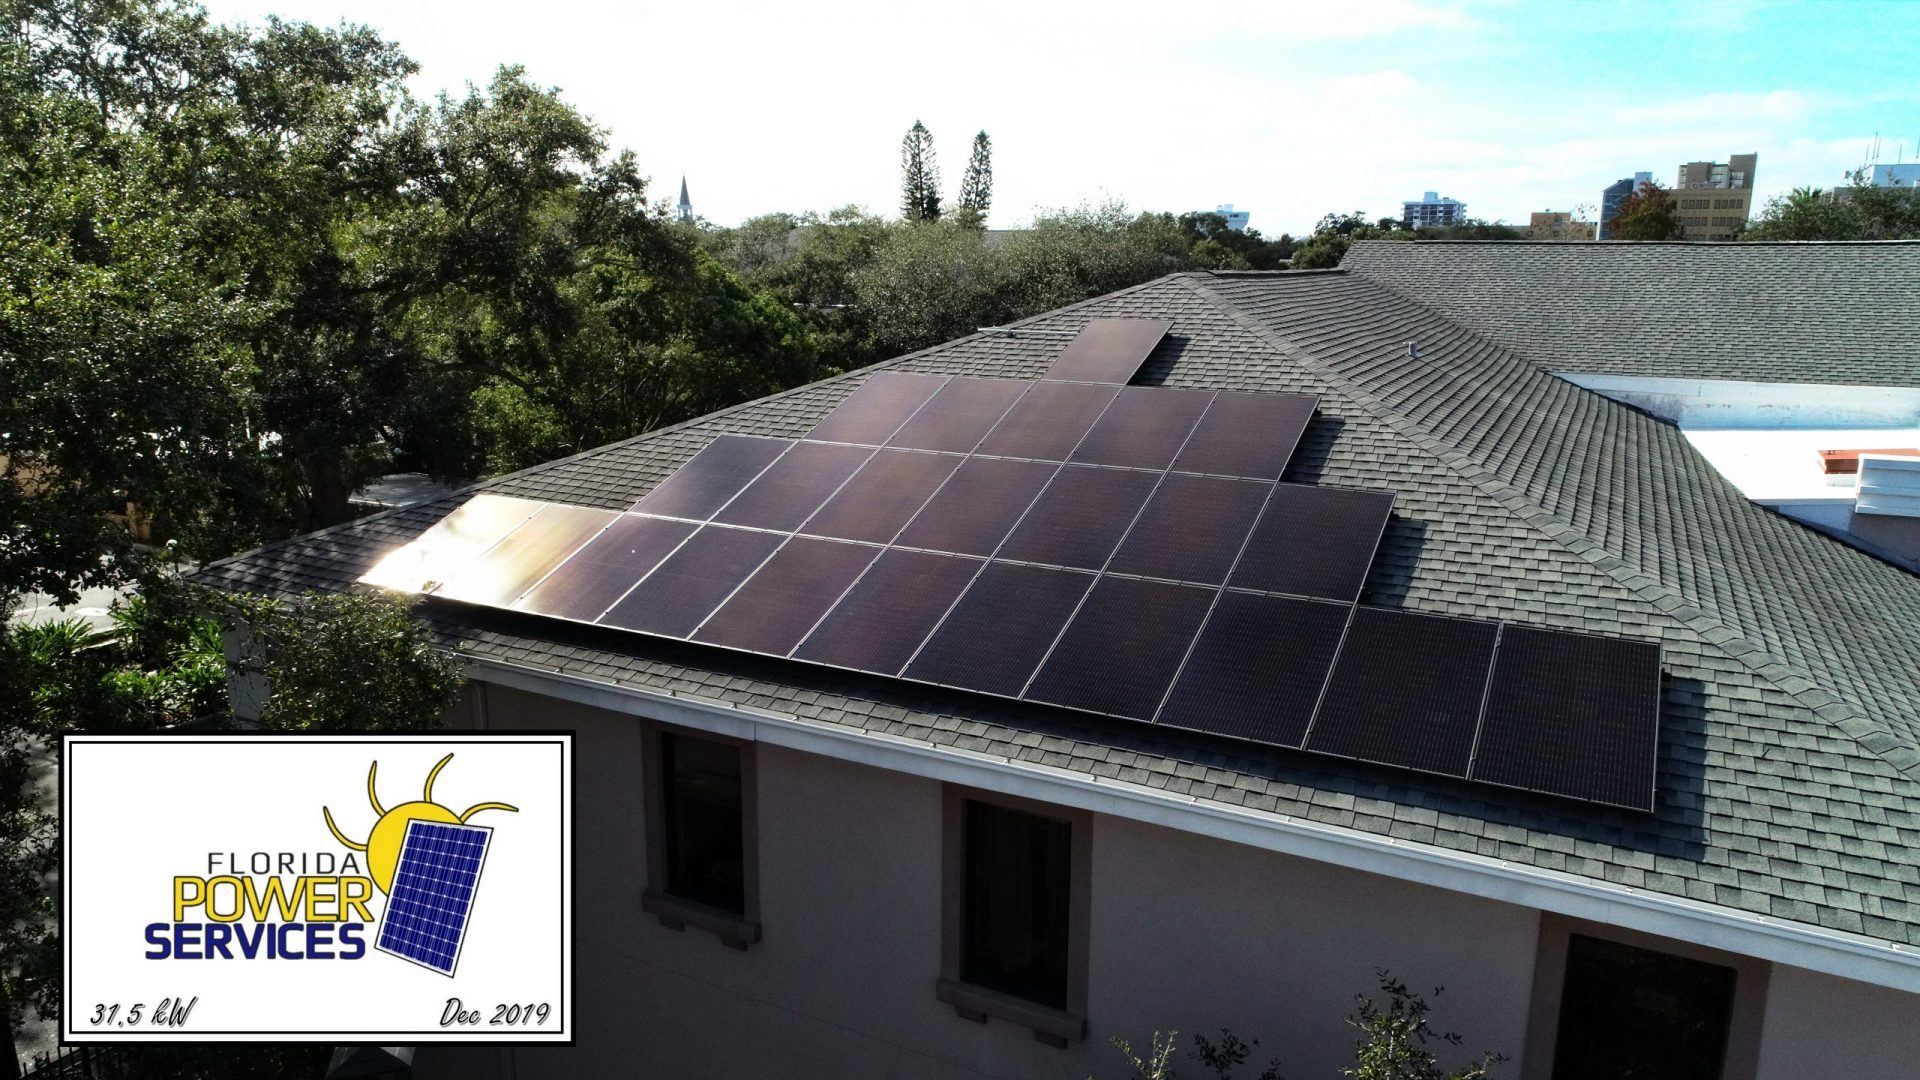 Clearwater Commercial 31.5 kW Solar System